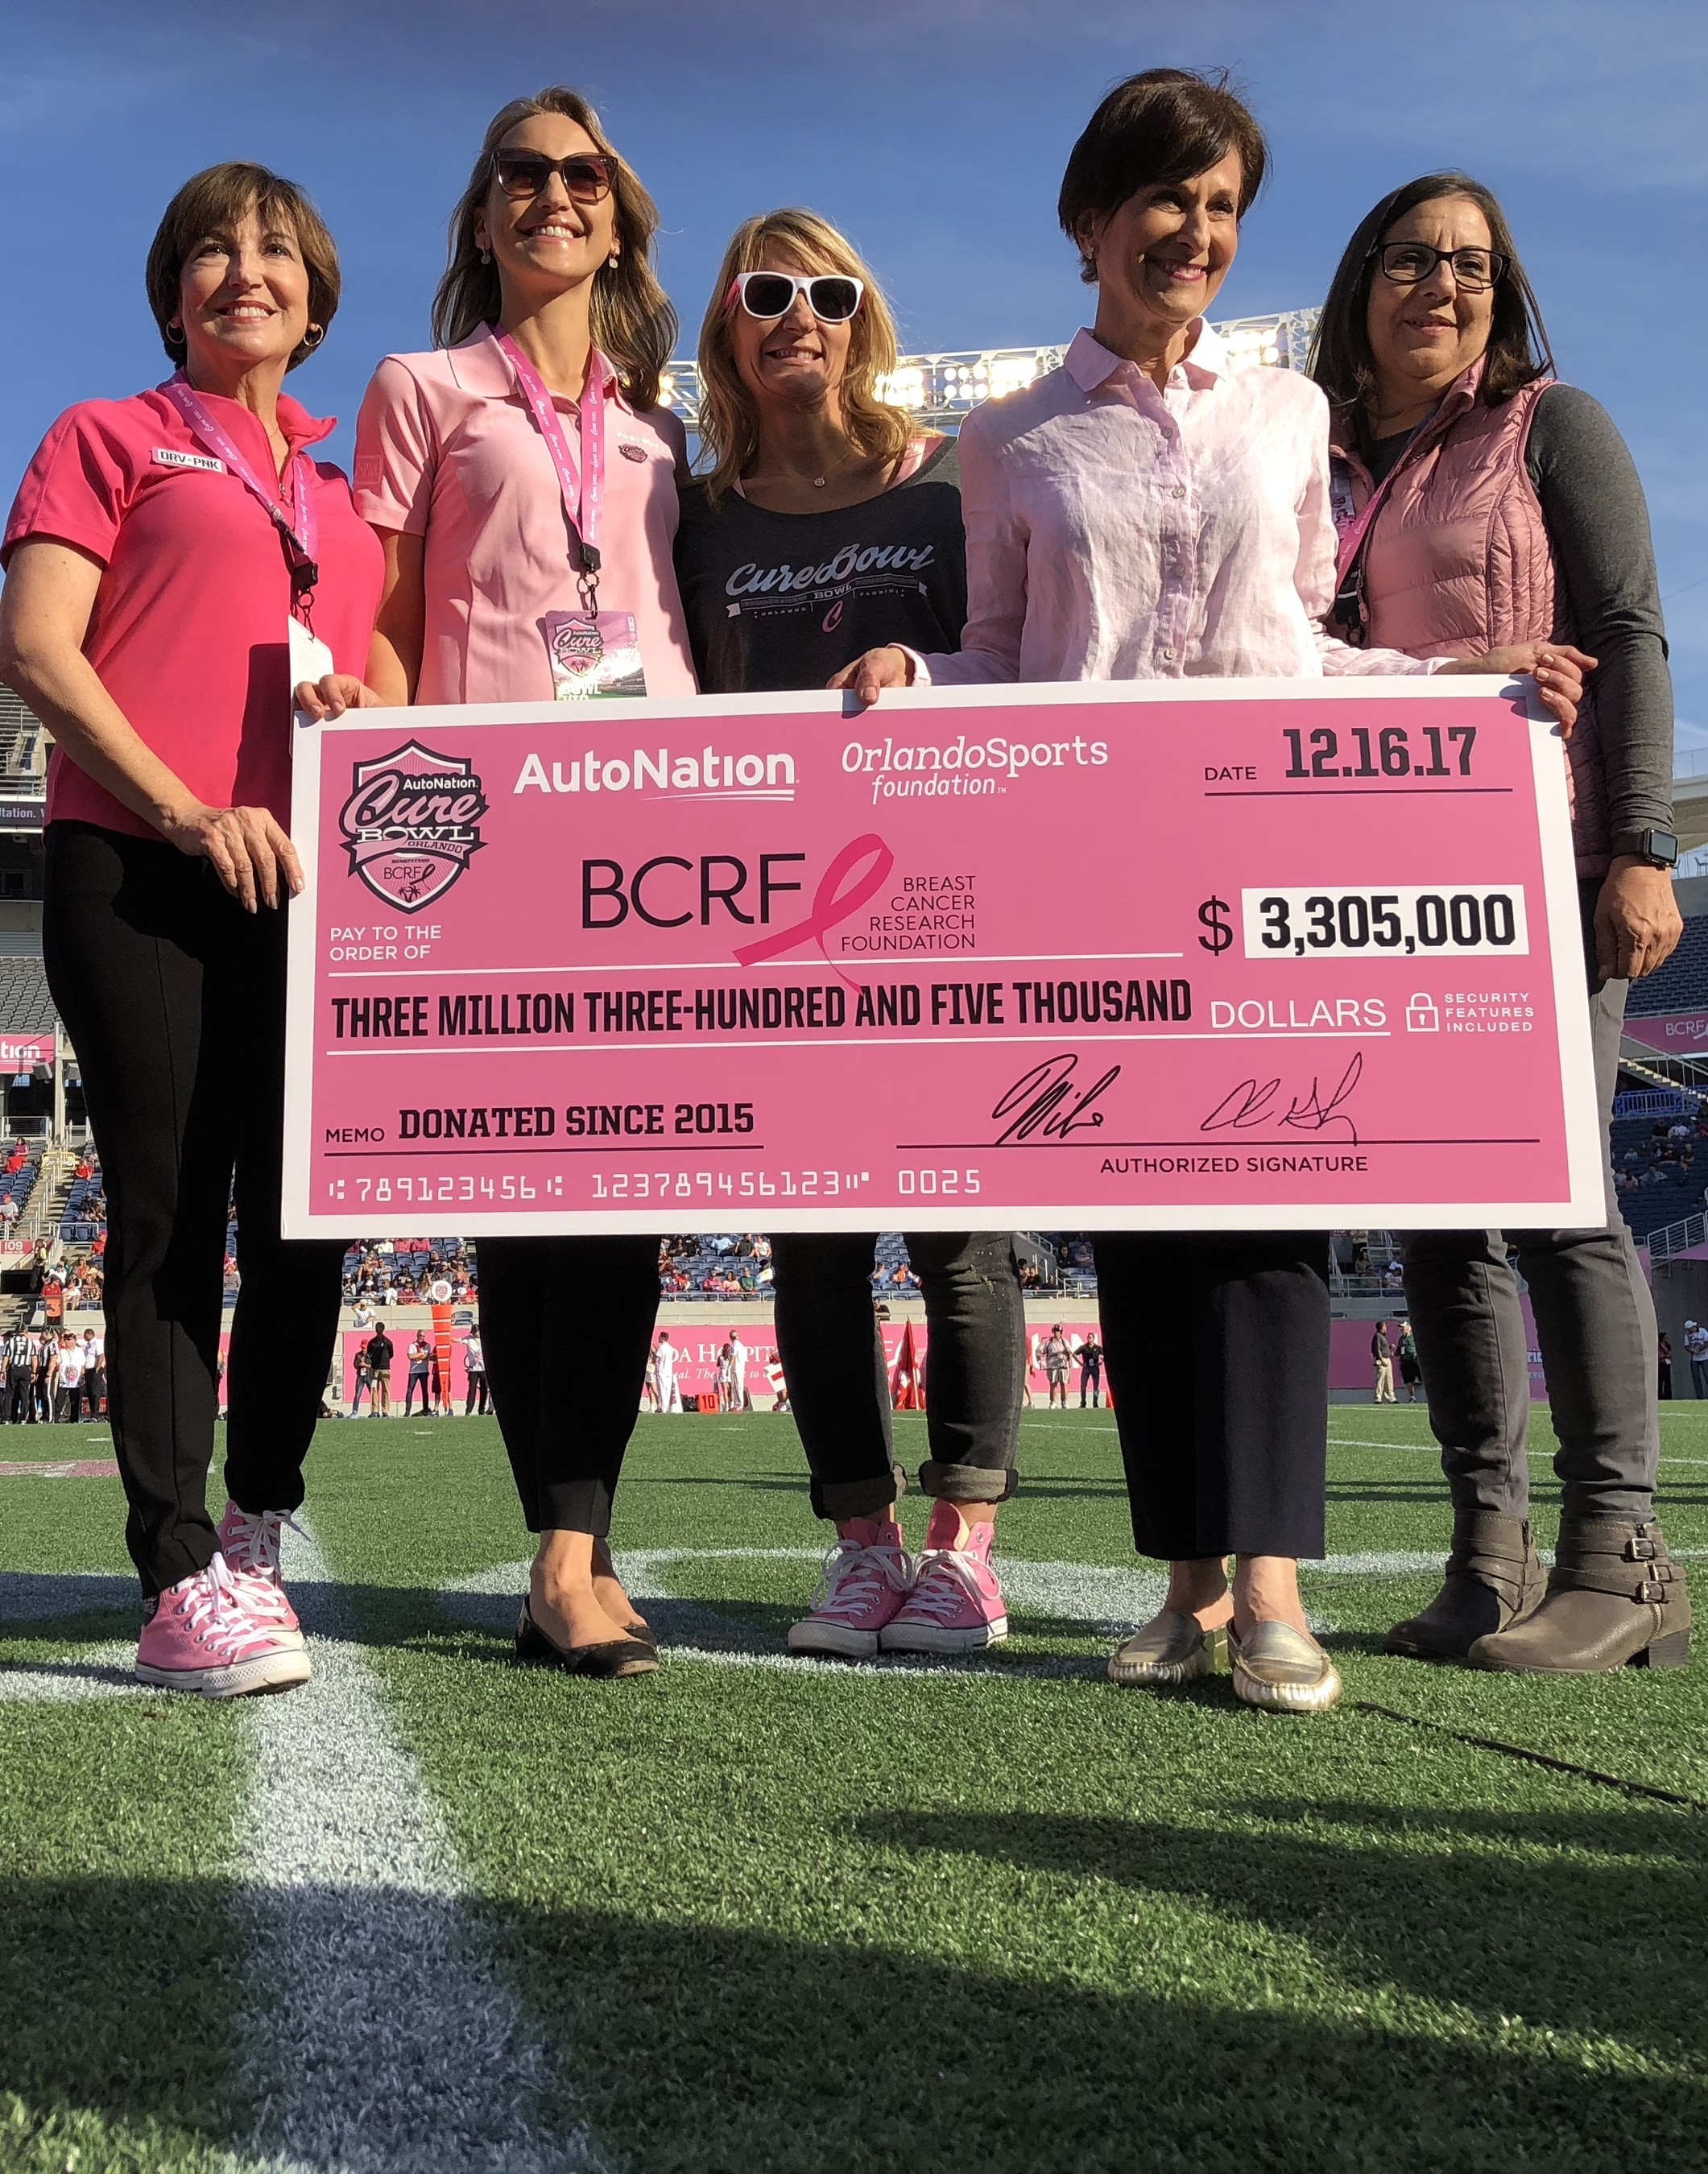 AutoNation & Orlando Sports Foundation present check to BCRF at the AutoNation Cure Bowl.